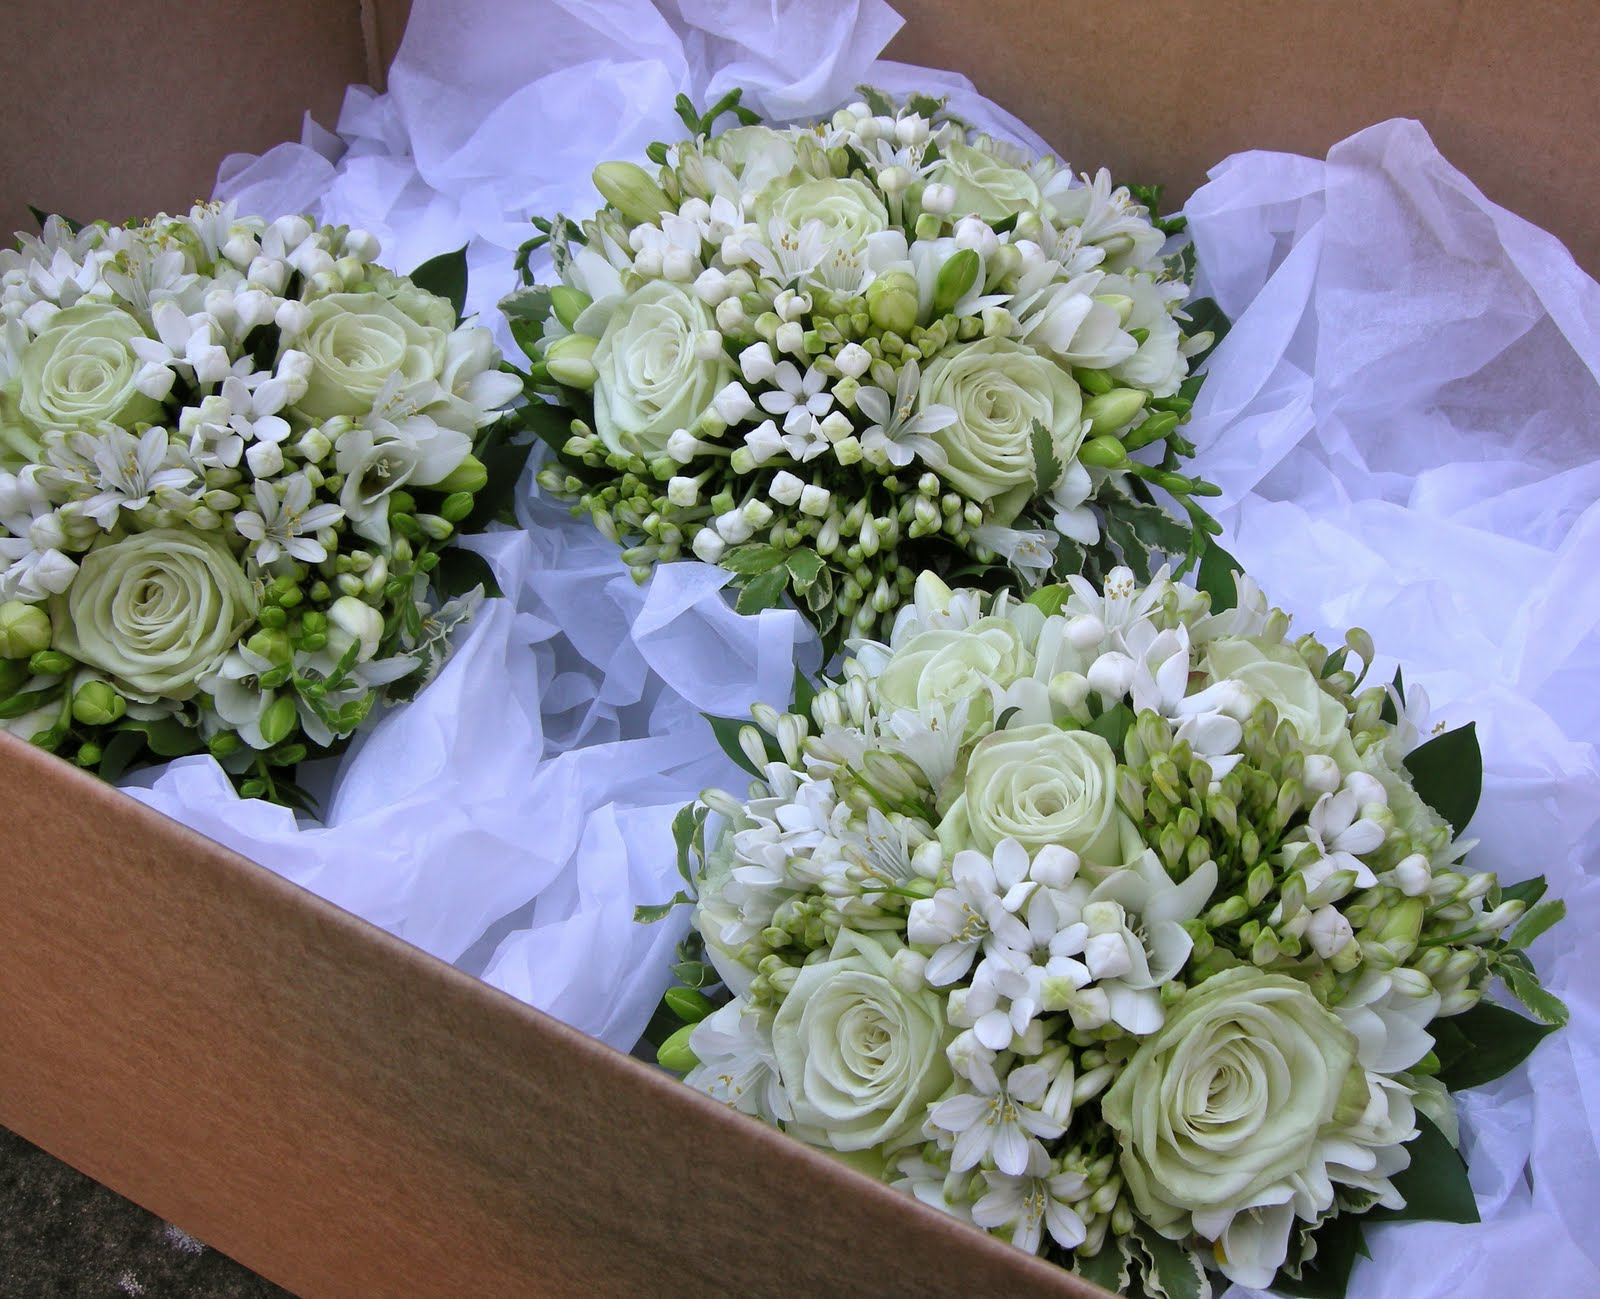 Wedding Flowers Blog Alisons Pale Green And White Wedding Flowers Potters Heron Ampfield